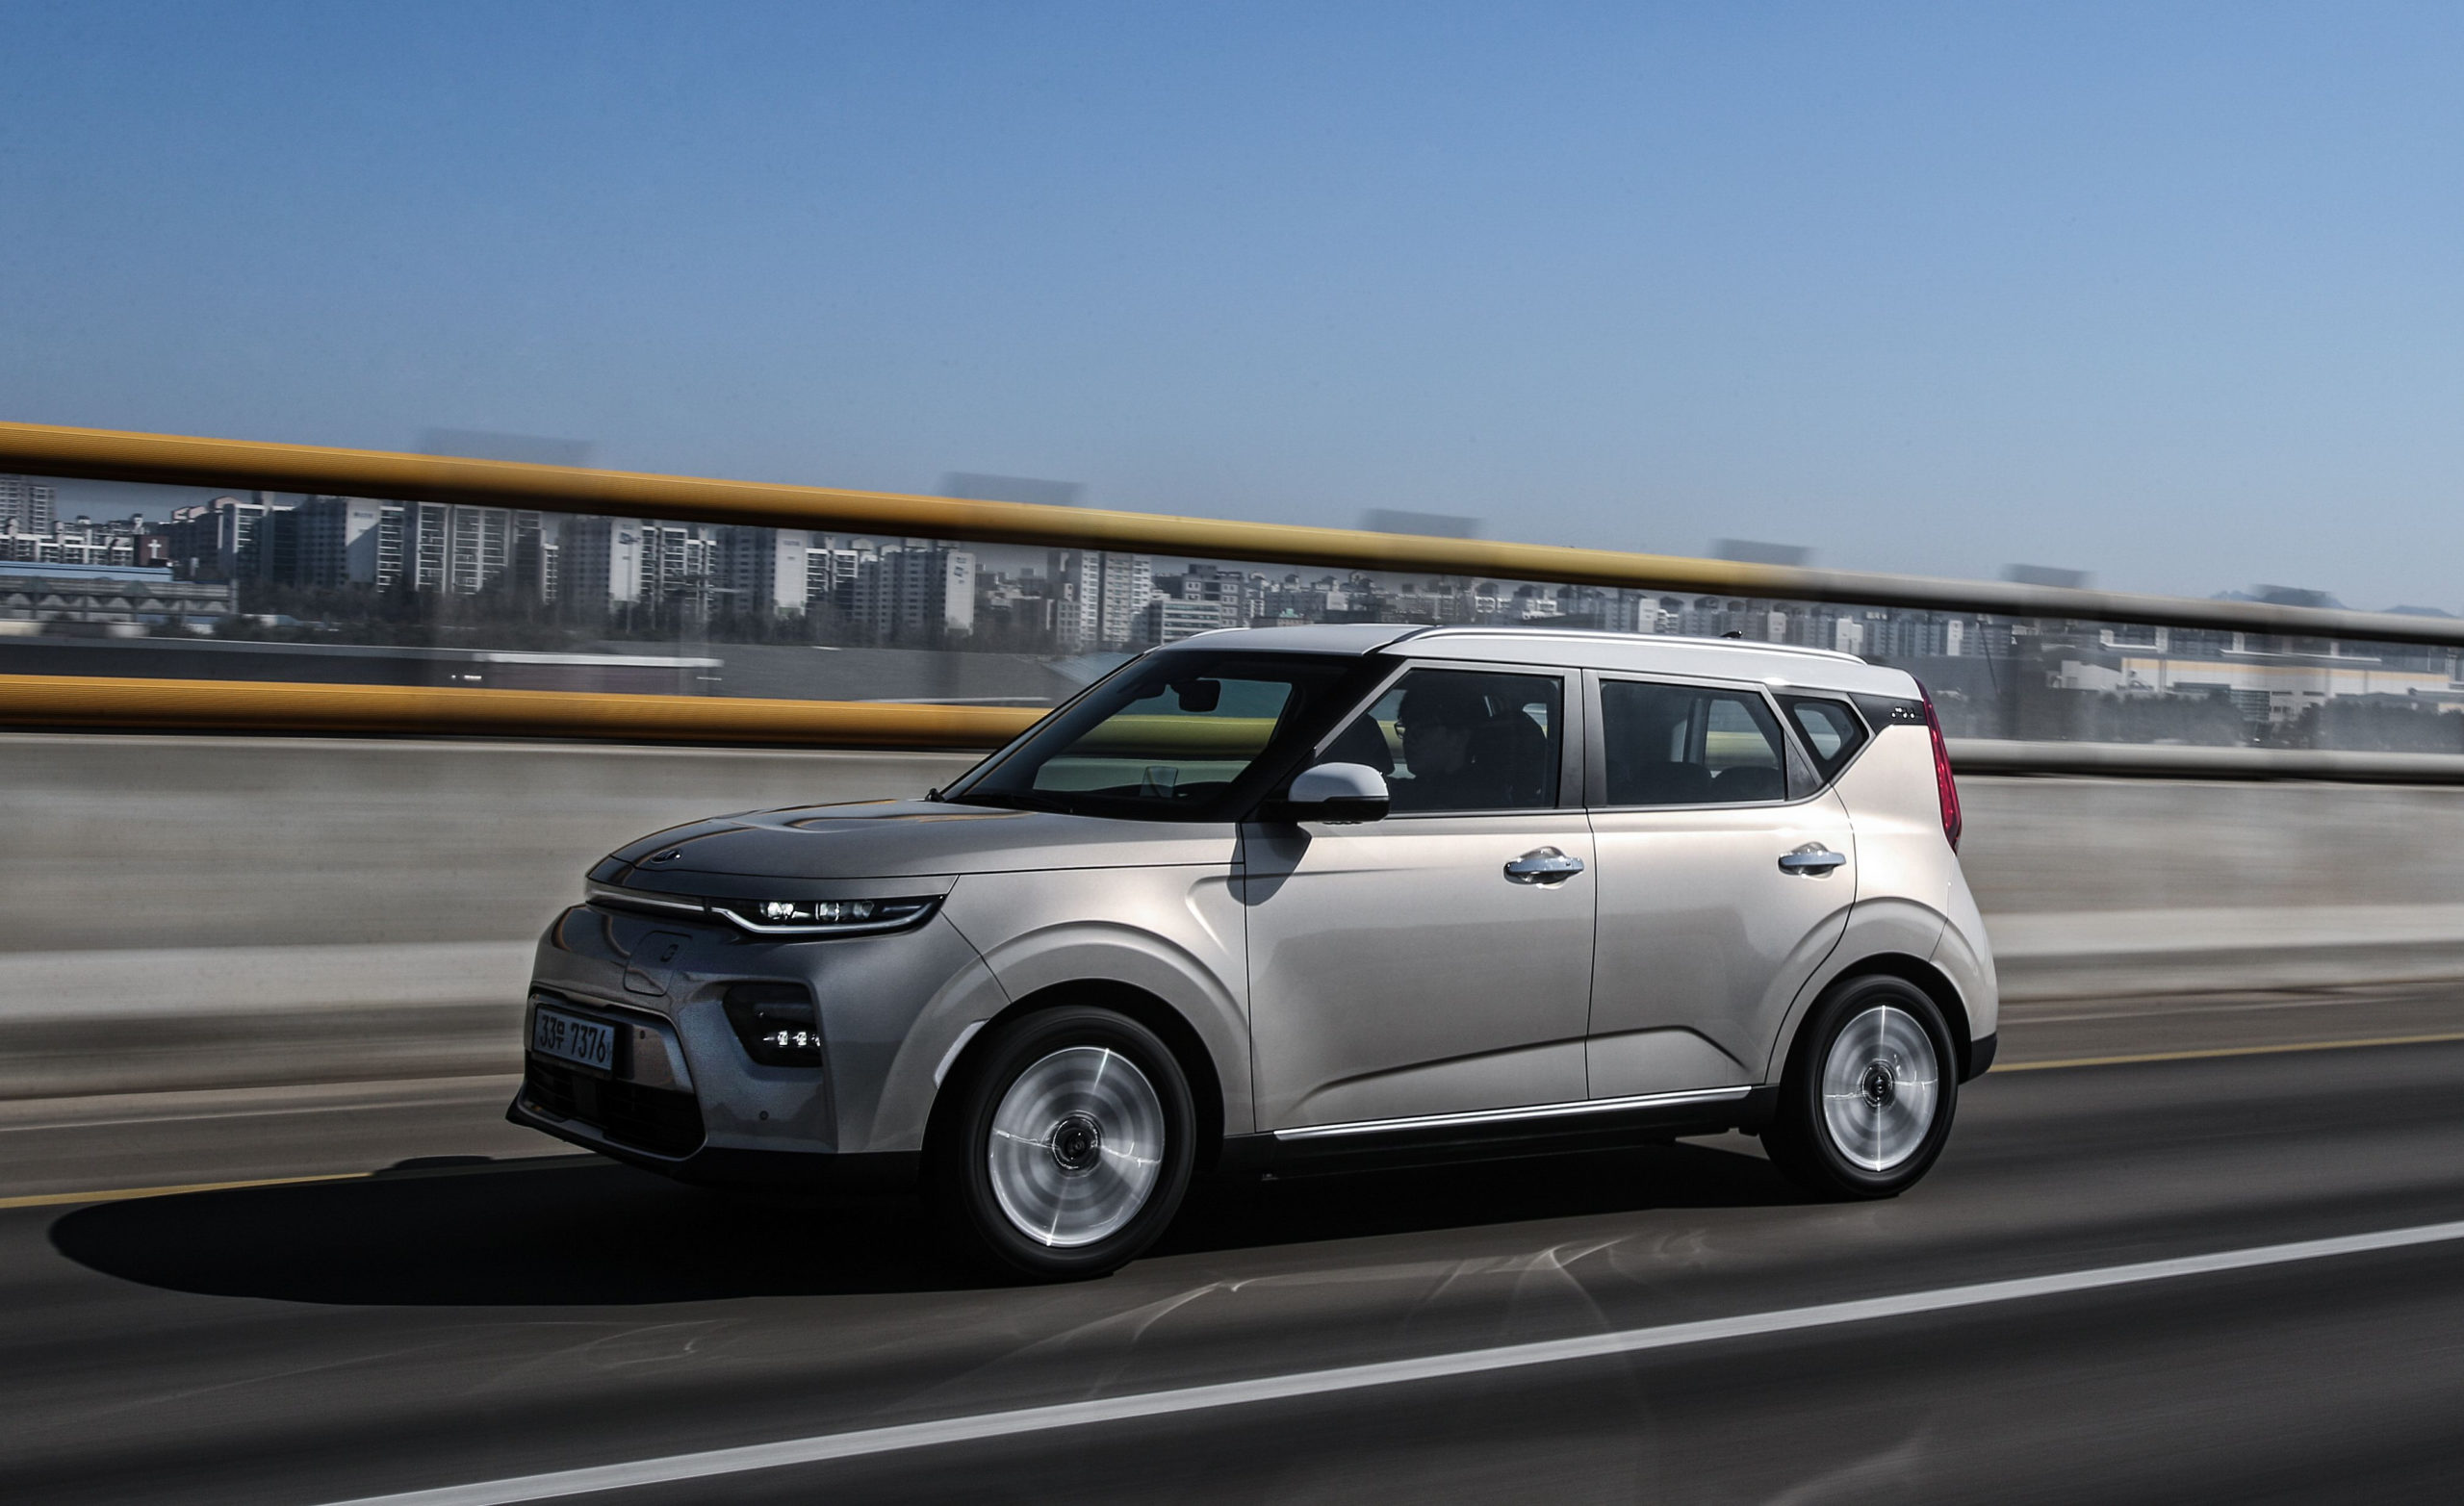 2020 Kia Soul Ev First Drive: More Powerful, More Range - 2022 Kia Soul Turbo 0-60 Specification, Release Date